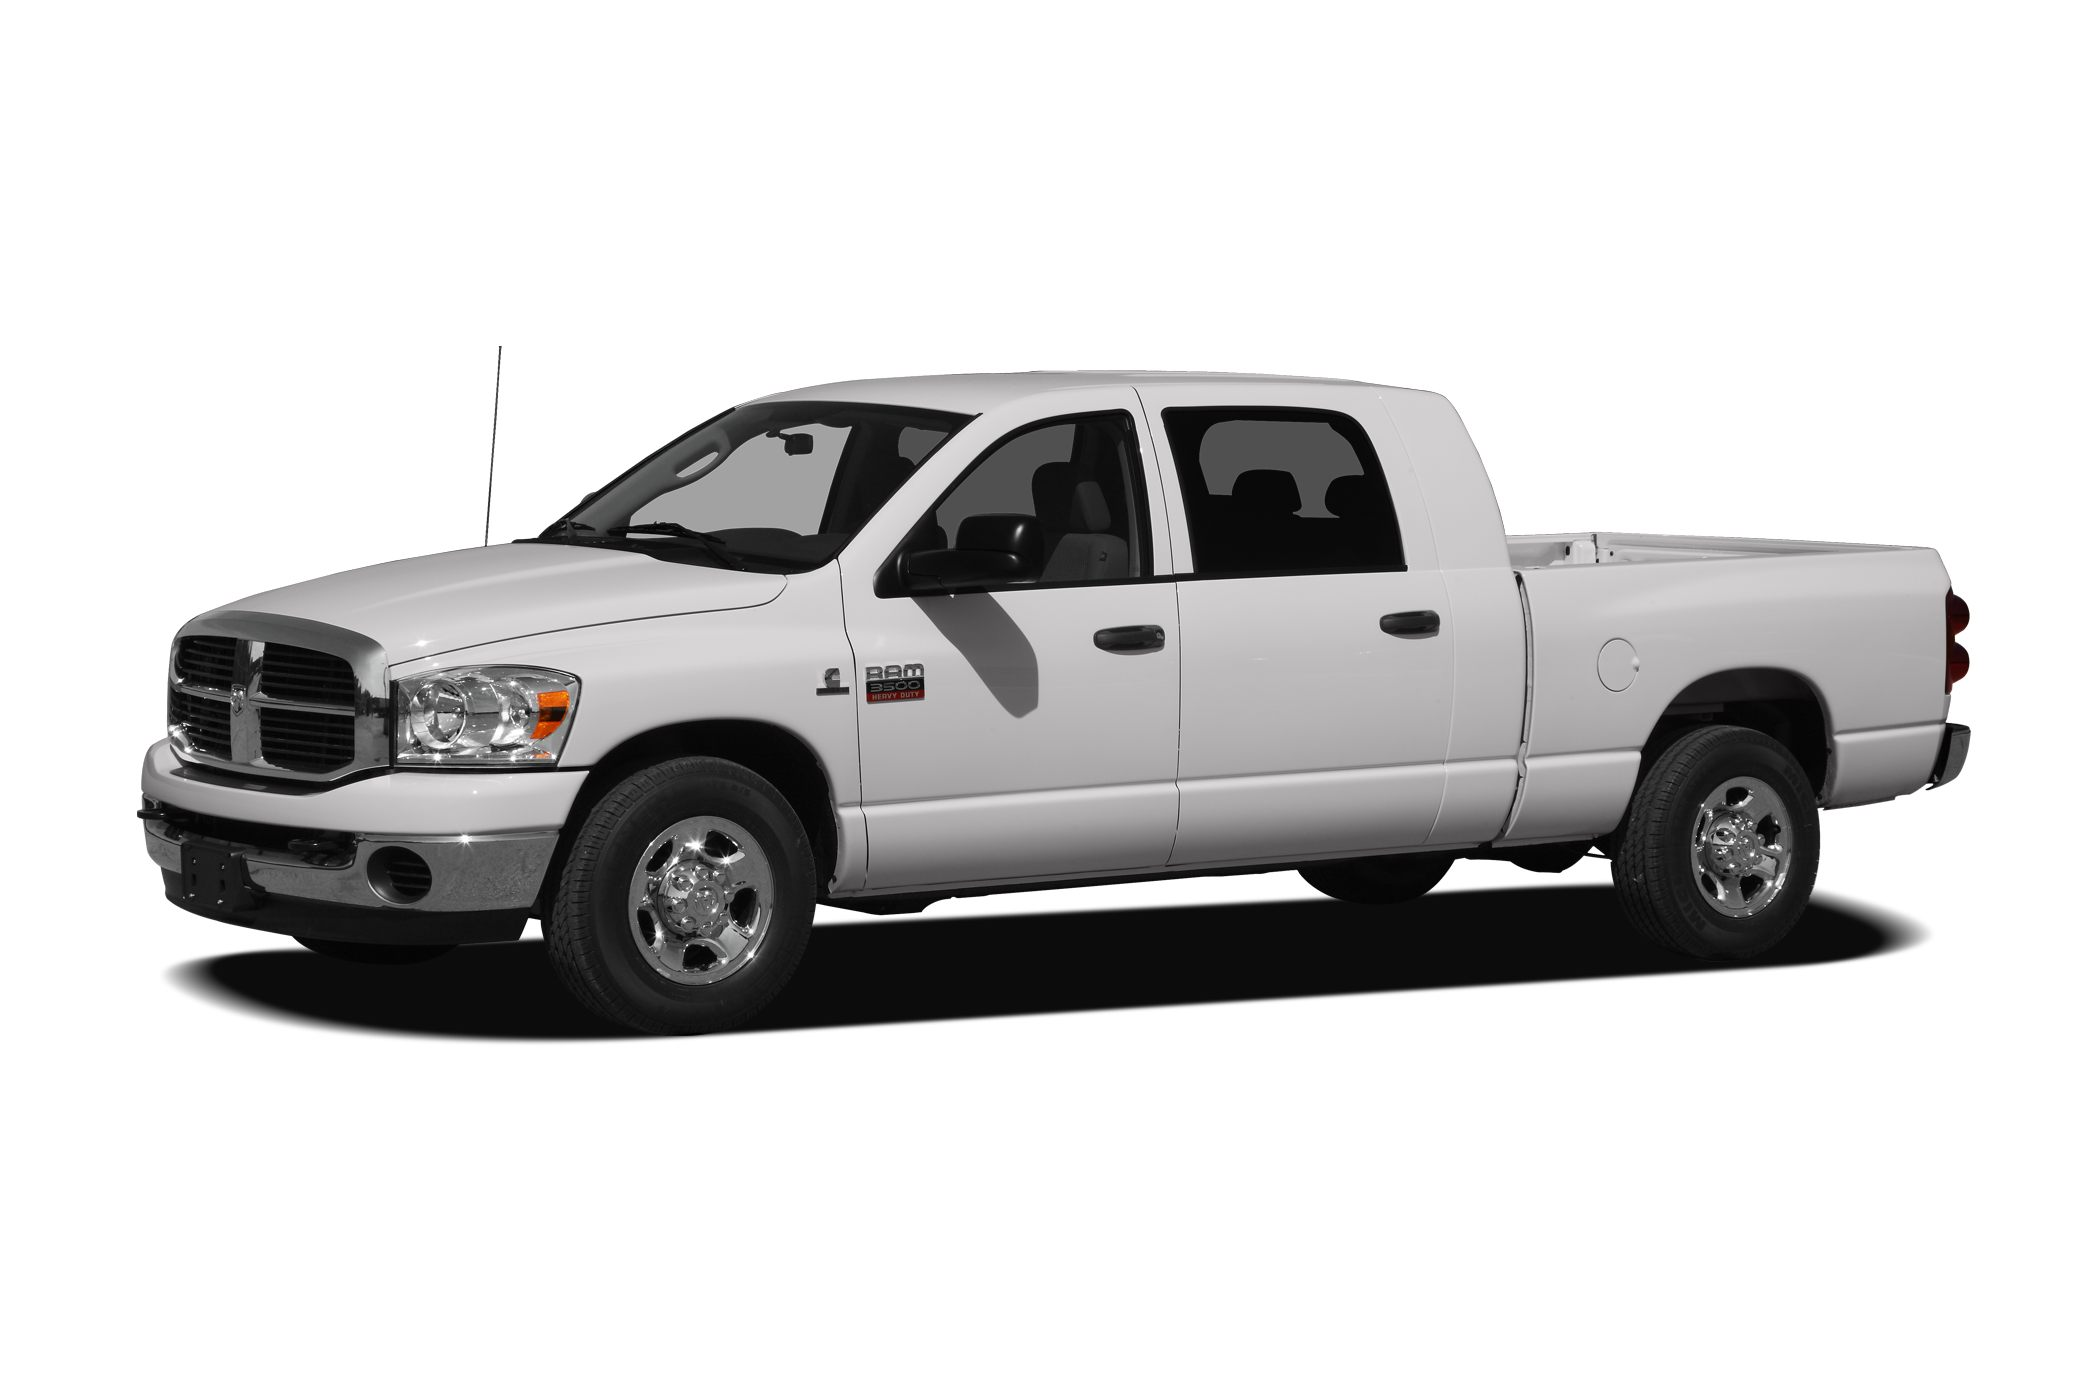 2008 Dodge Ram 3500 Laramie Miles 130029Color Bright White Stock 160621B VIN 3D7MX38A18G1001